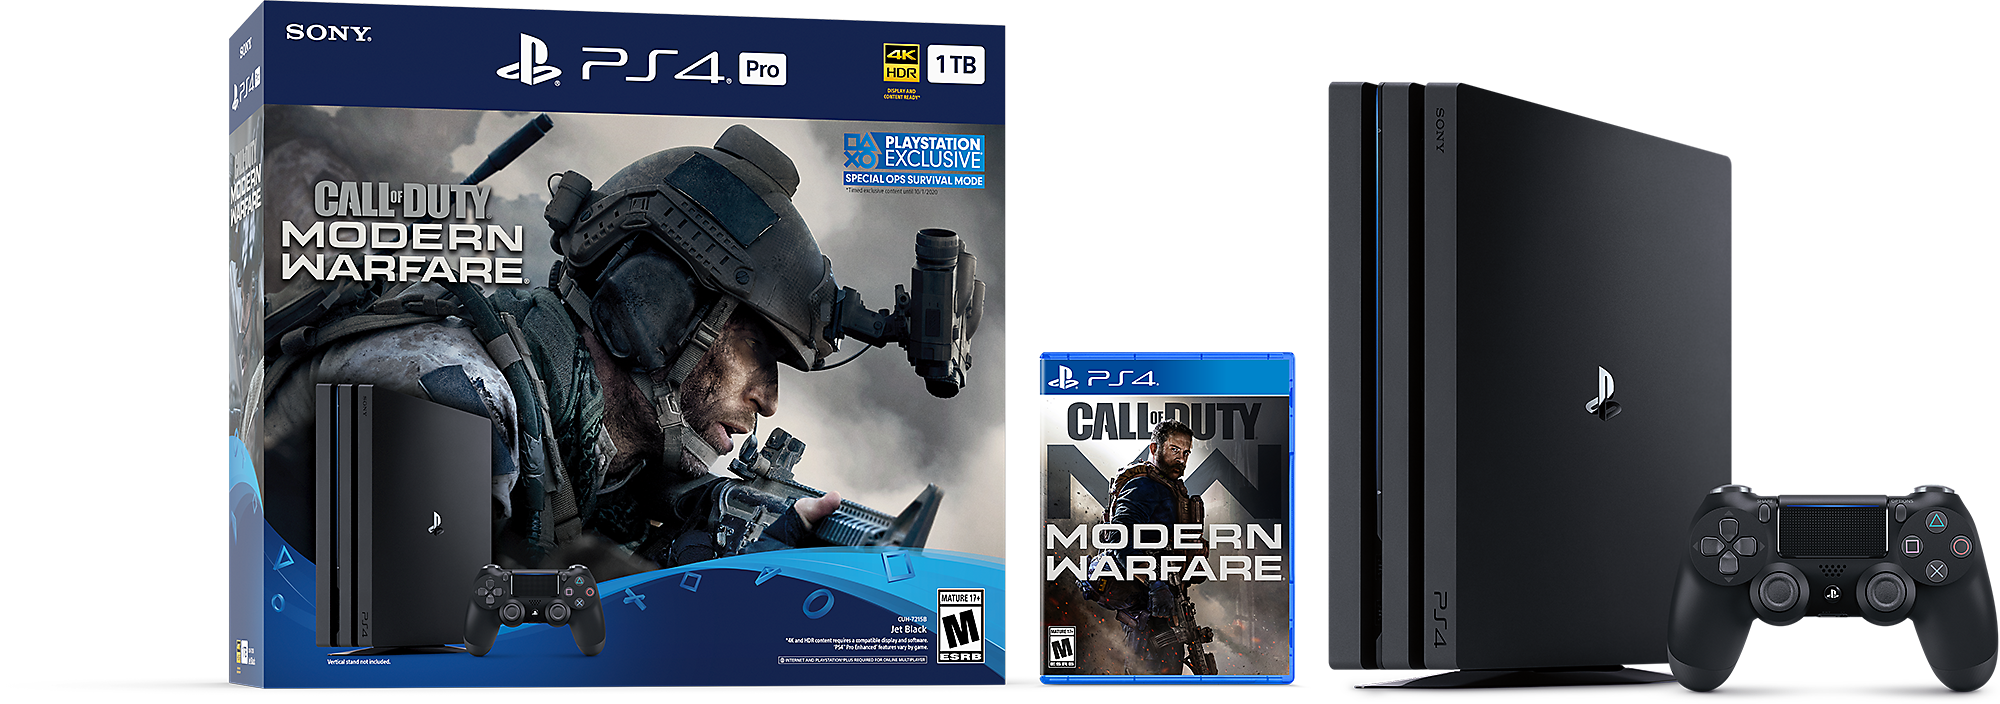 Call of Duty: Modern Warfare PS4 Pro Bundle Product Shot